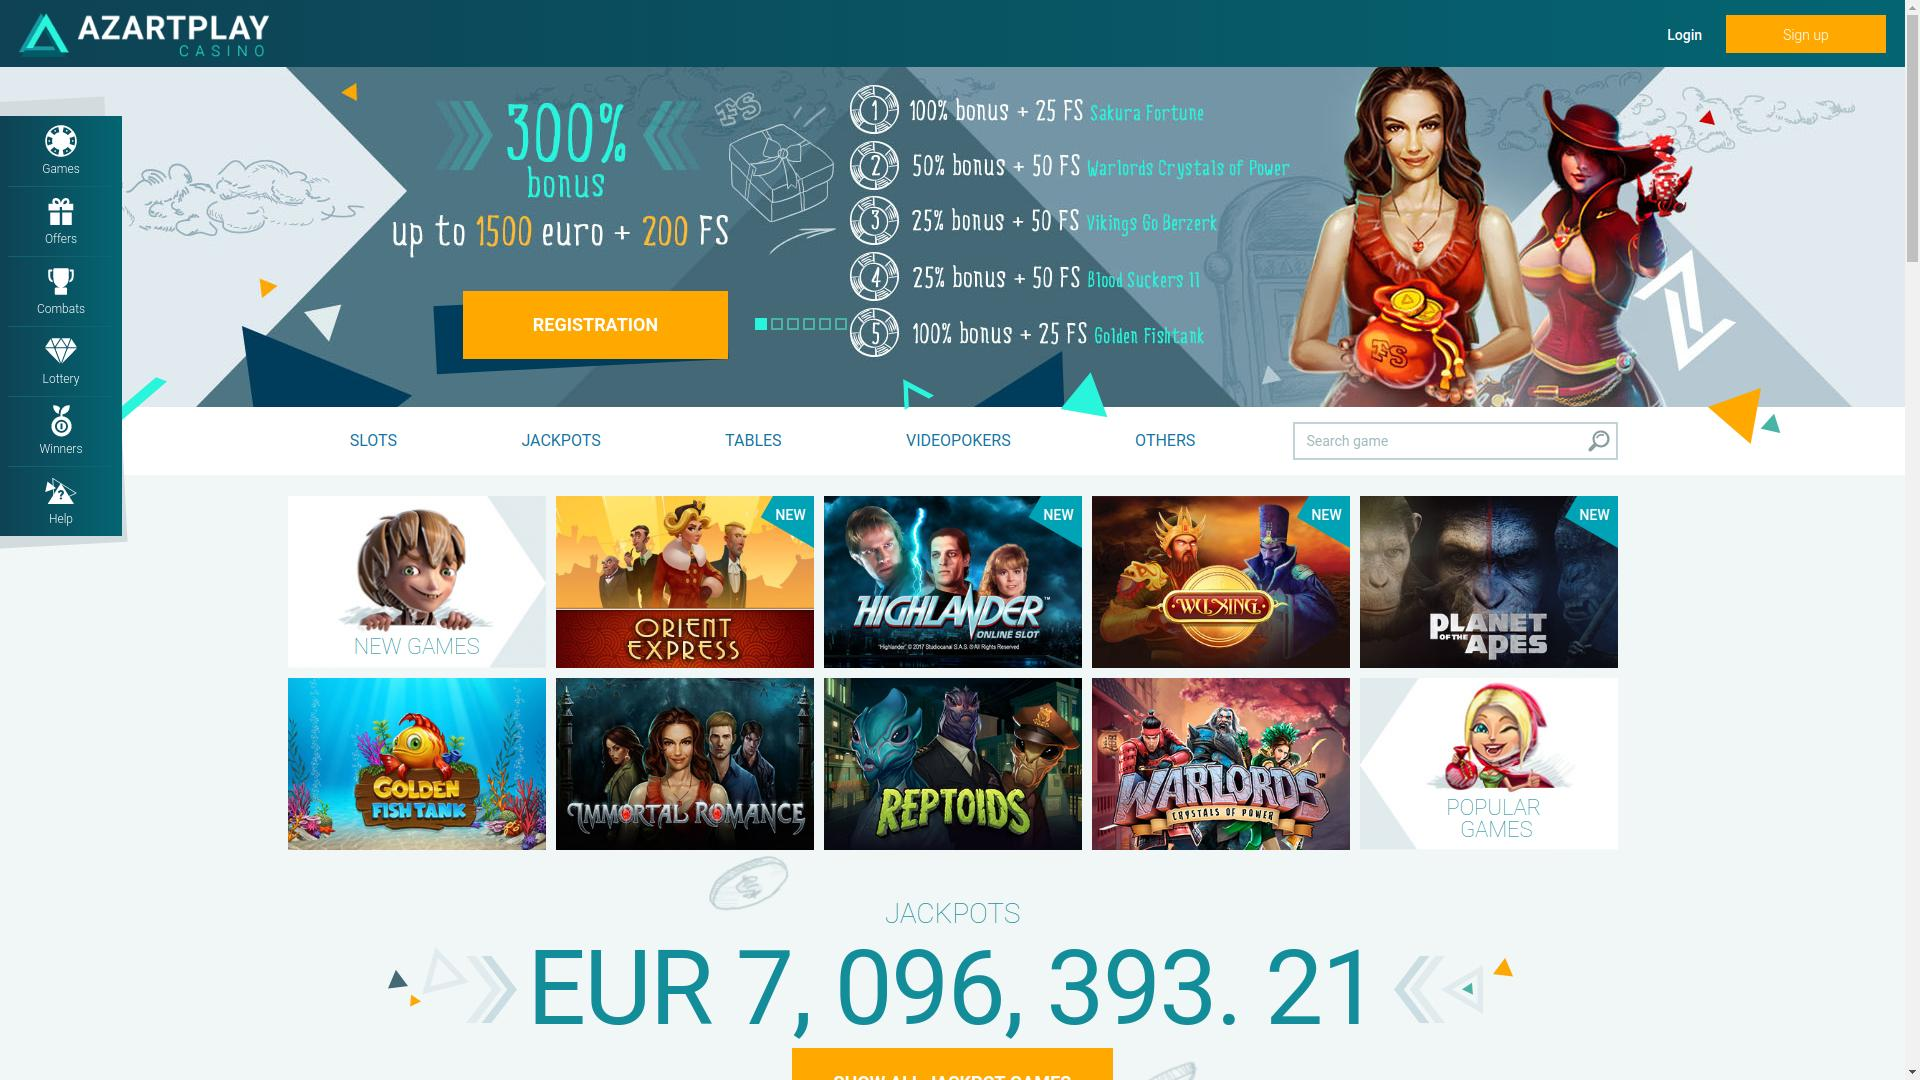 официальный сайт azartplay casino регистрация